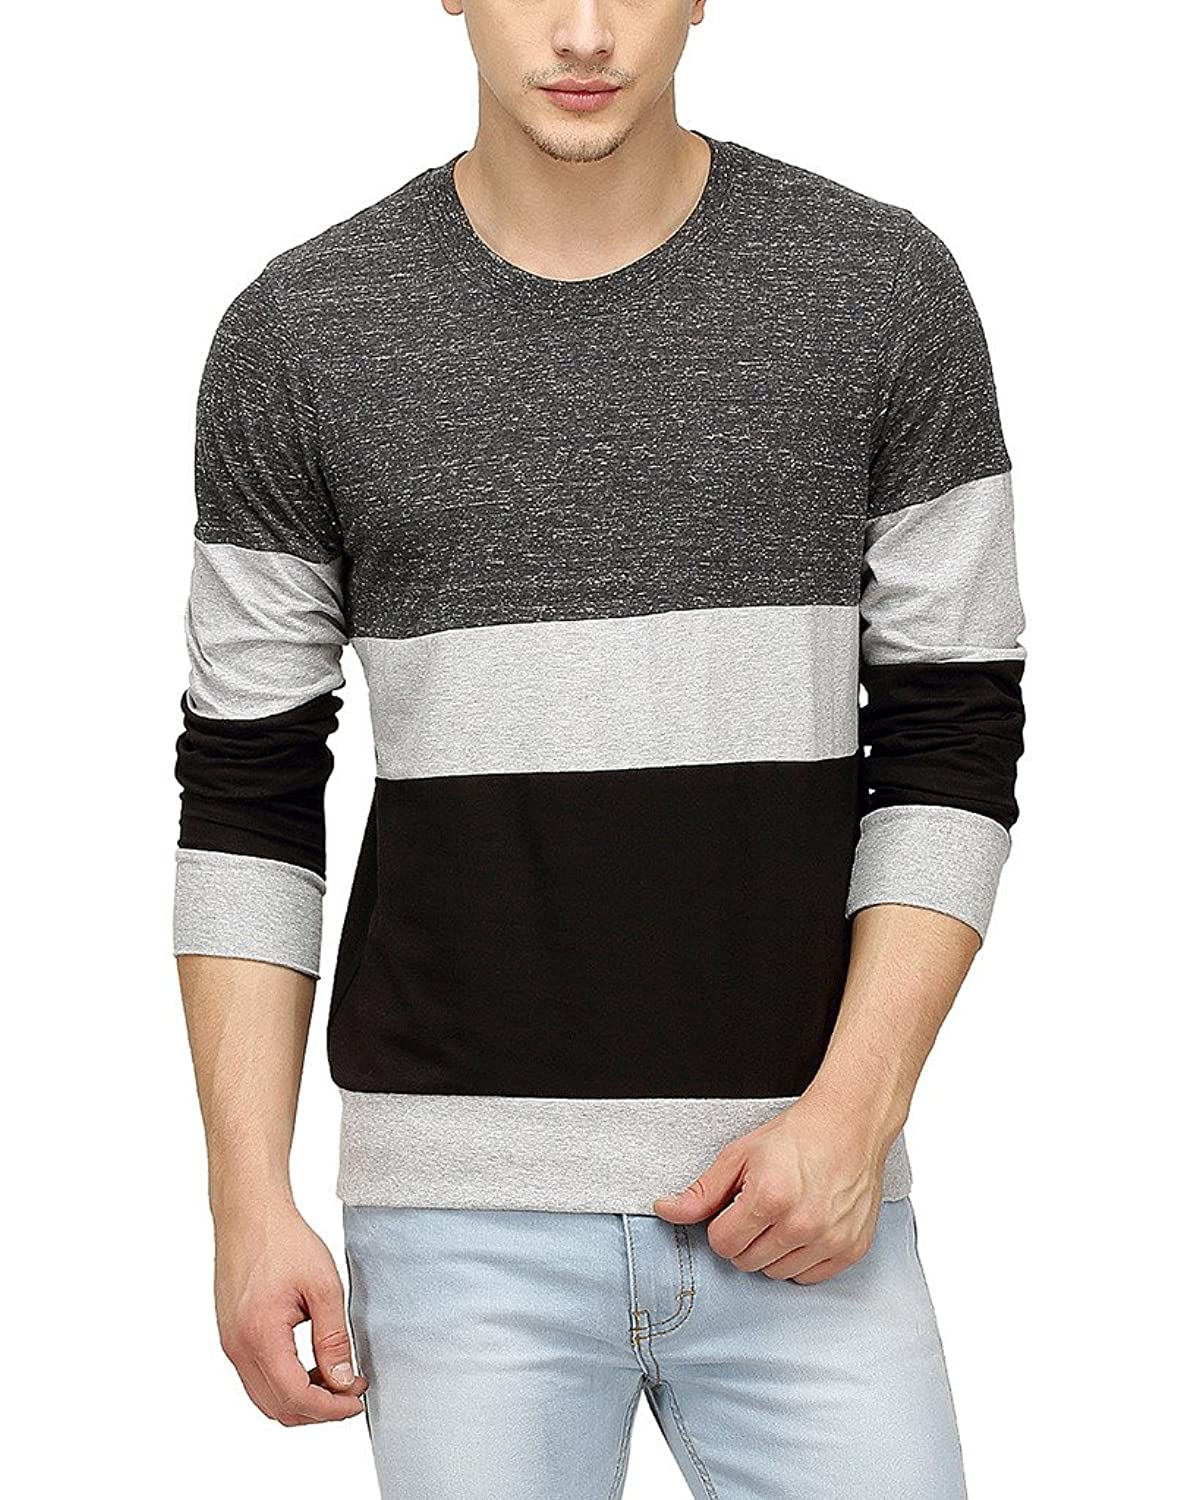 Full sleeve T-shirts for men are among the best outfits for all types of body frames, allowing the macho man to flaunt those muscular lines and for the slimmer guys, it works as a great layered outfit.